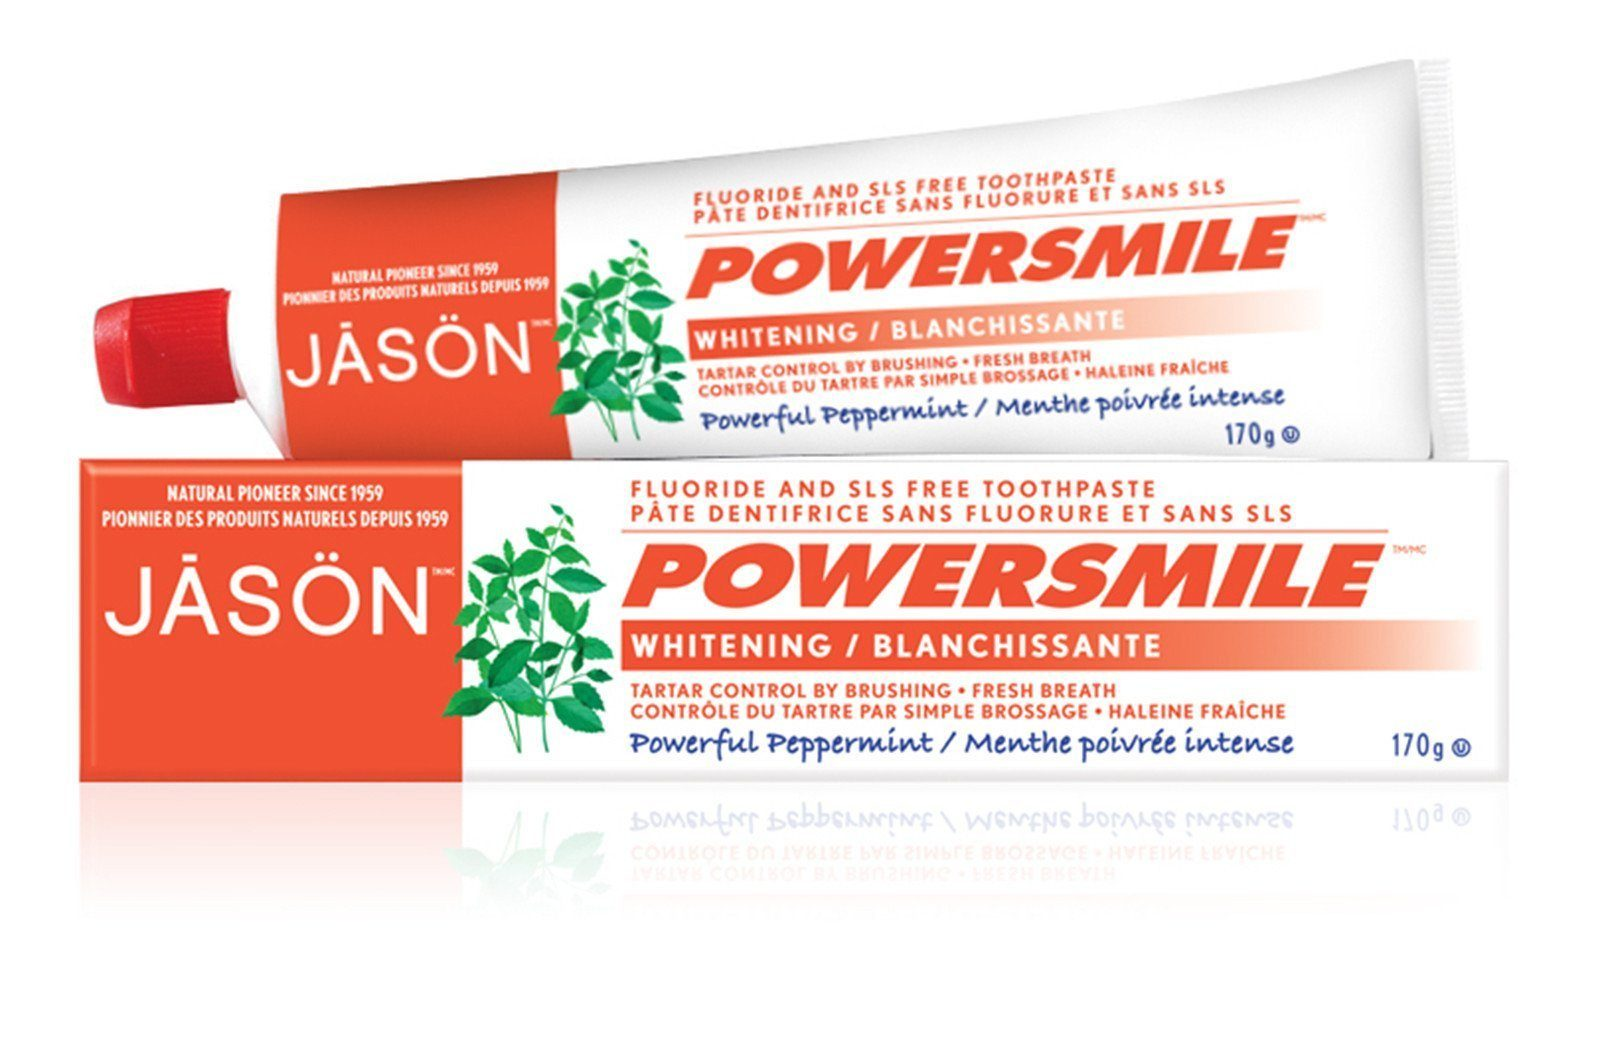 Personal Care,Food & Drink - JASON - PowerSmile Toothpaste, 170g